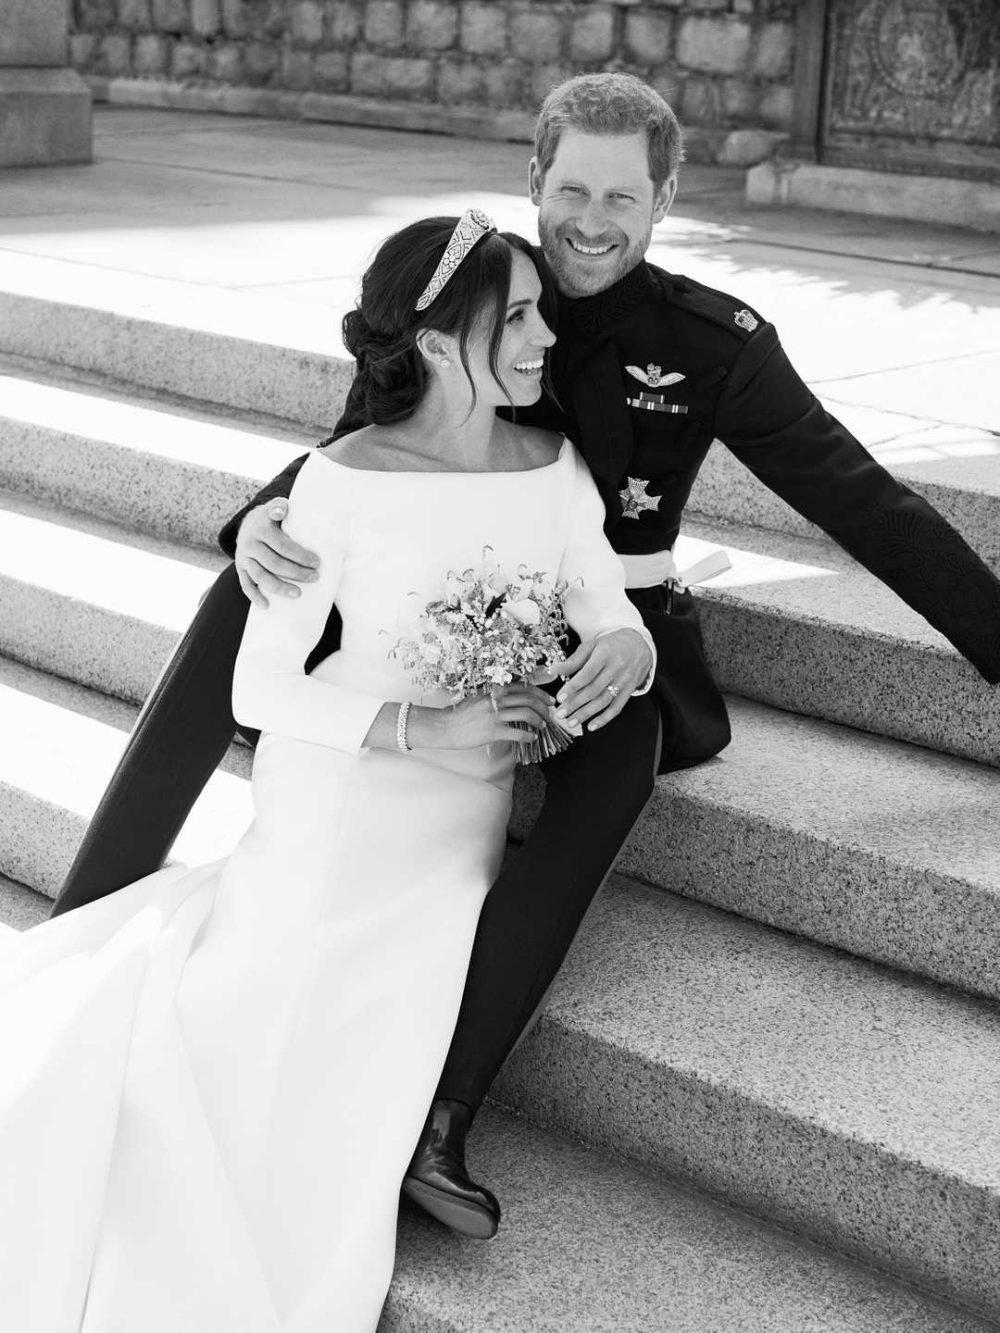 <h4>A black and white image from Alex Lubomirski of Harry and Meghan </h4>